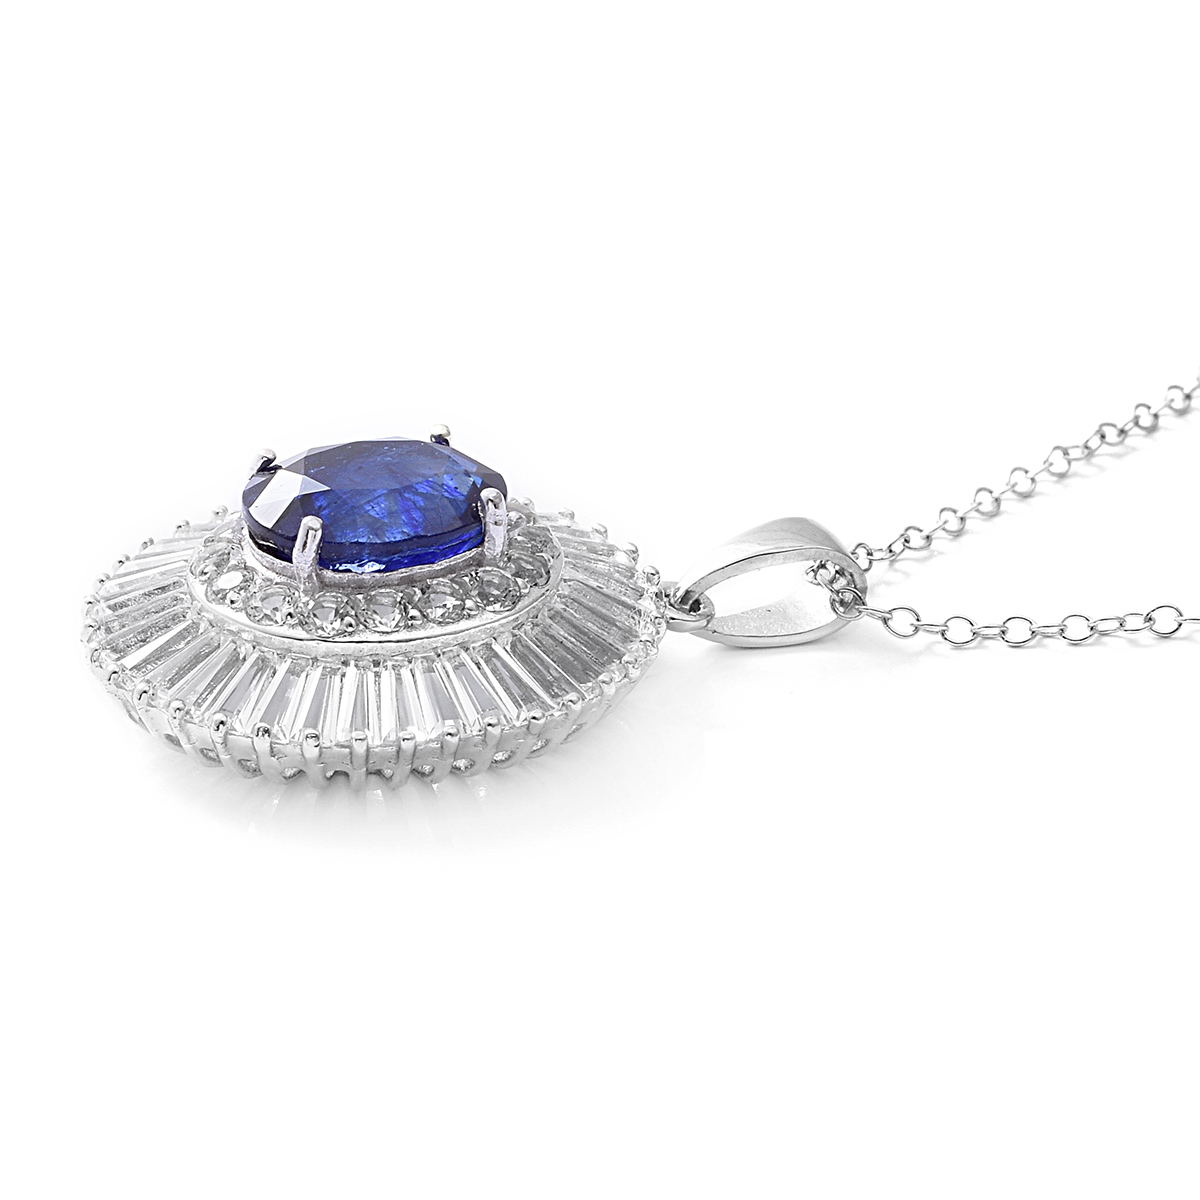 Masoala Sapphire, White Topaz Platinum Over Sterling Silver Pendant With Chain (18 in) TGW 9.97 cts.